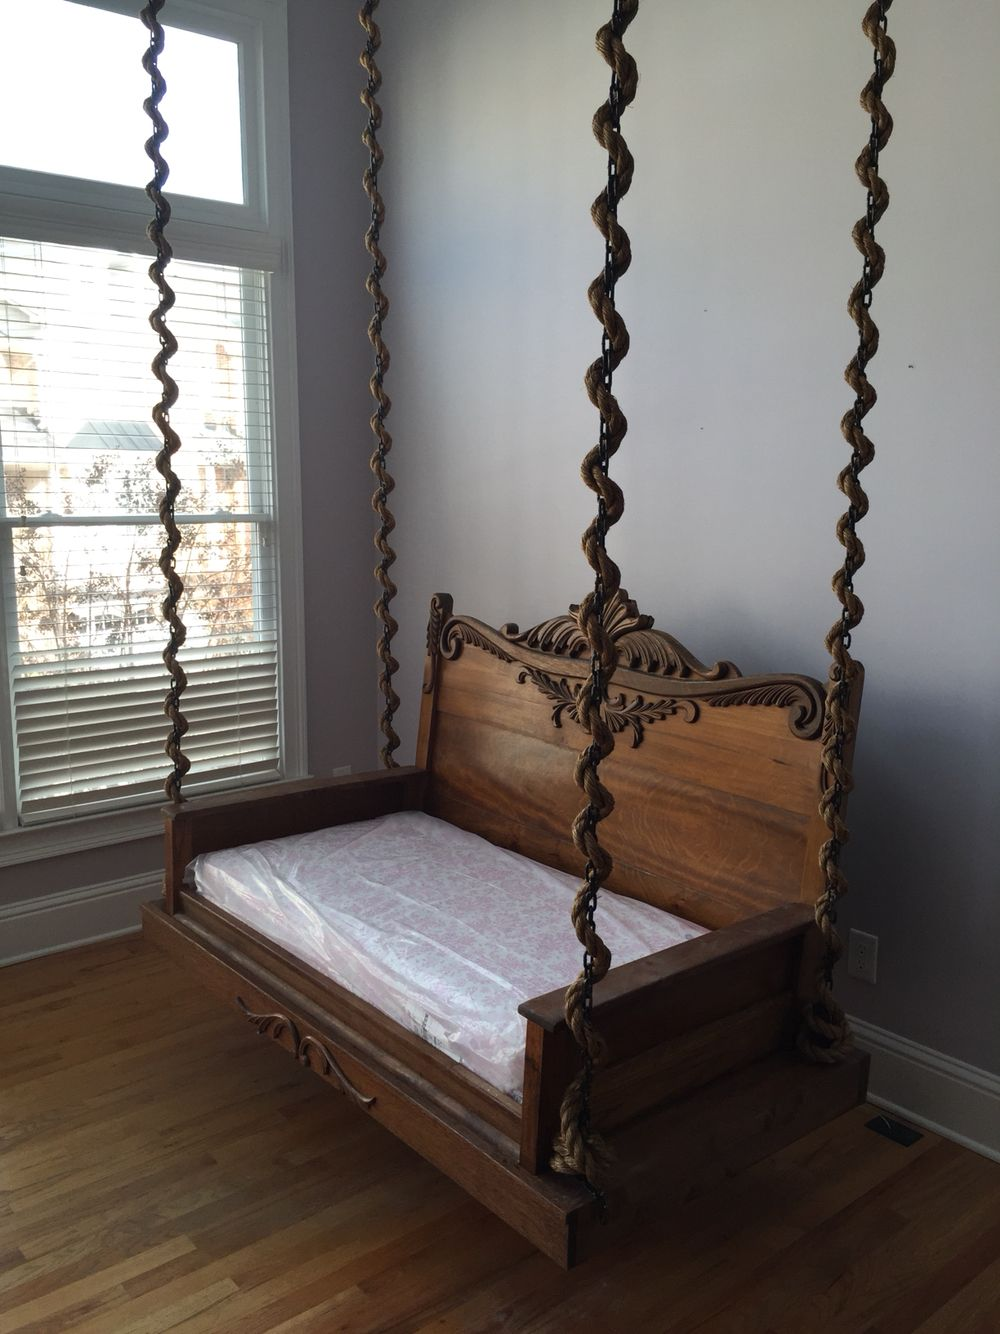 Rope Swing Bed Porch Made Of